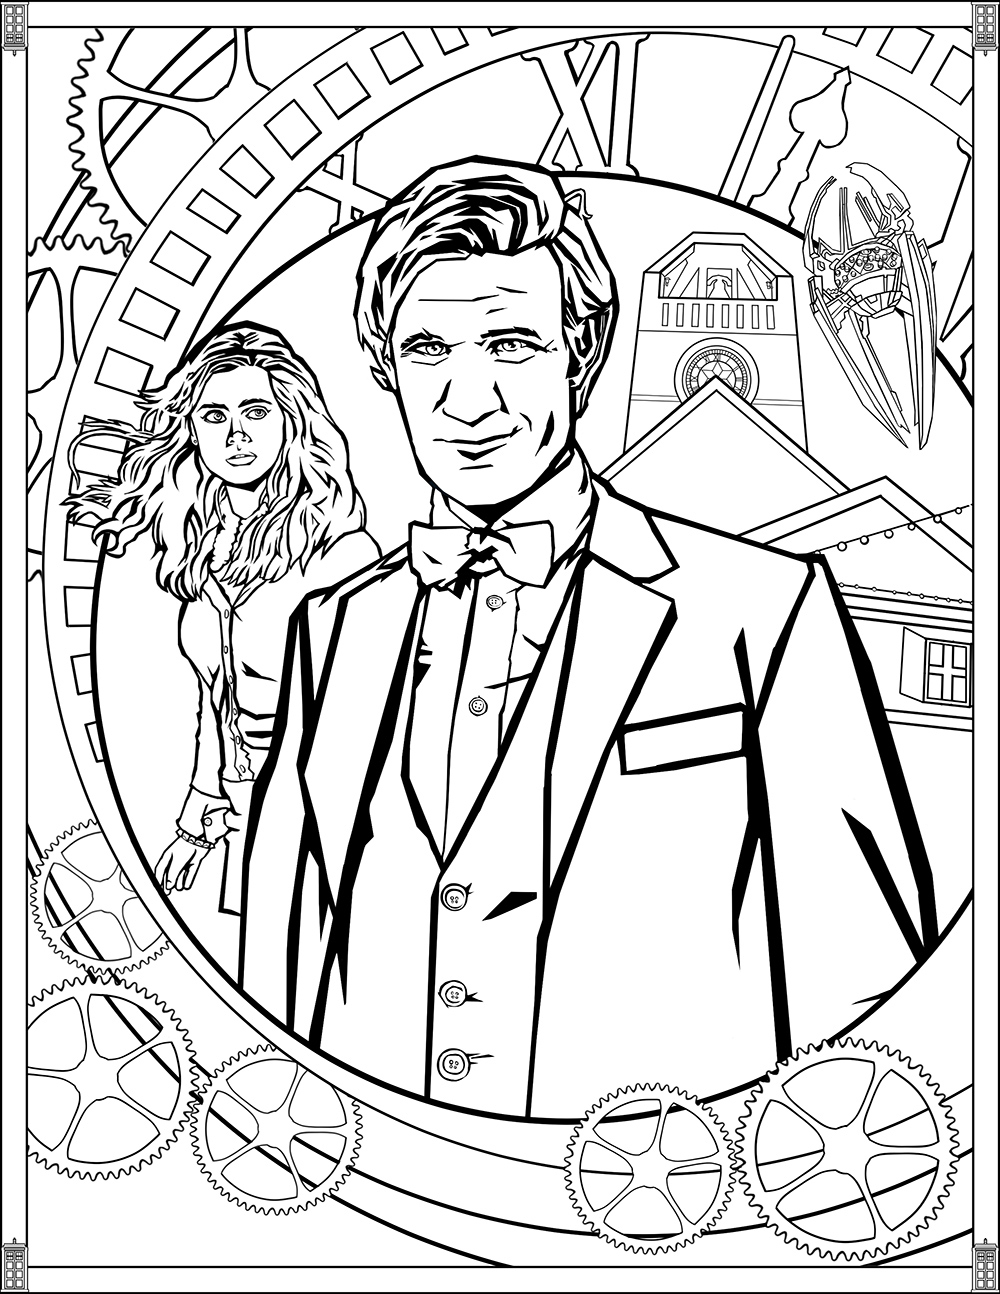 Doctor Who Coloring Page Doctor Who Pages Eleventh Doctor Tv Shows Adult Coloring Pages